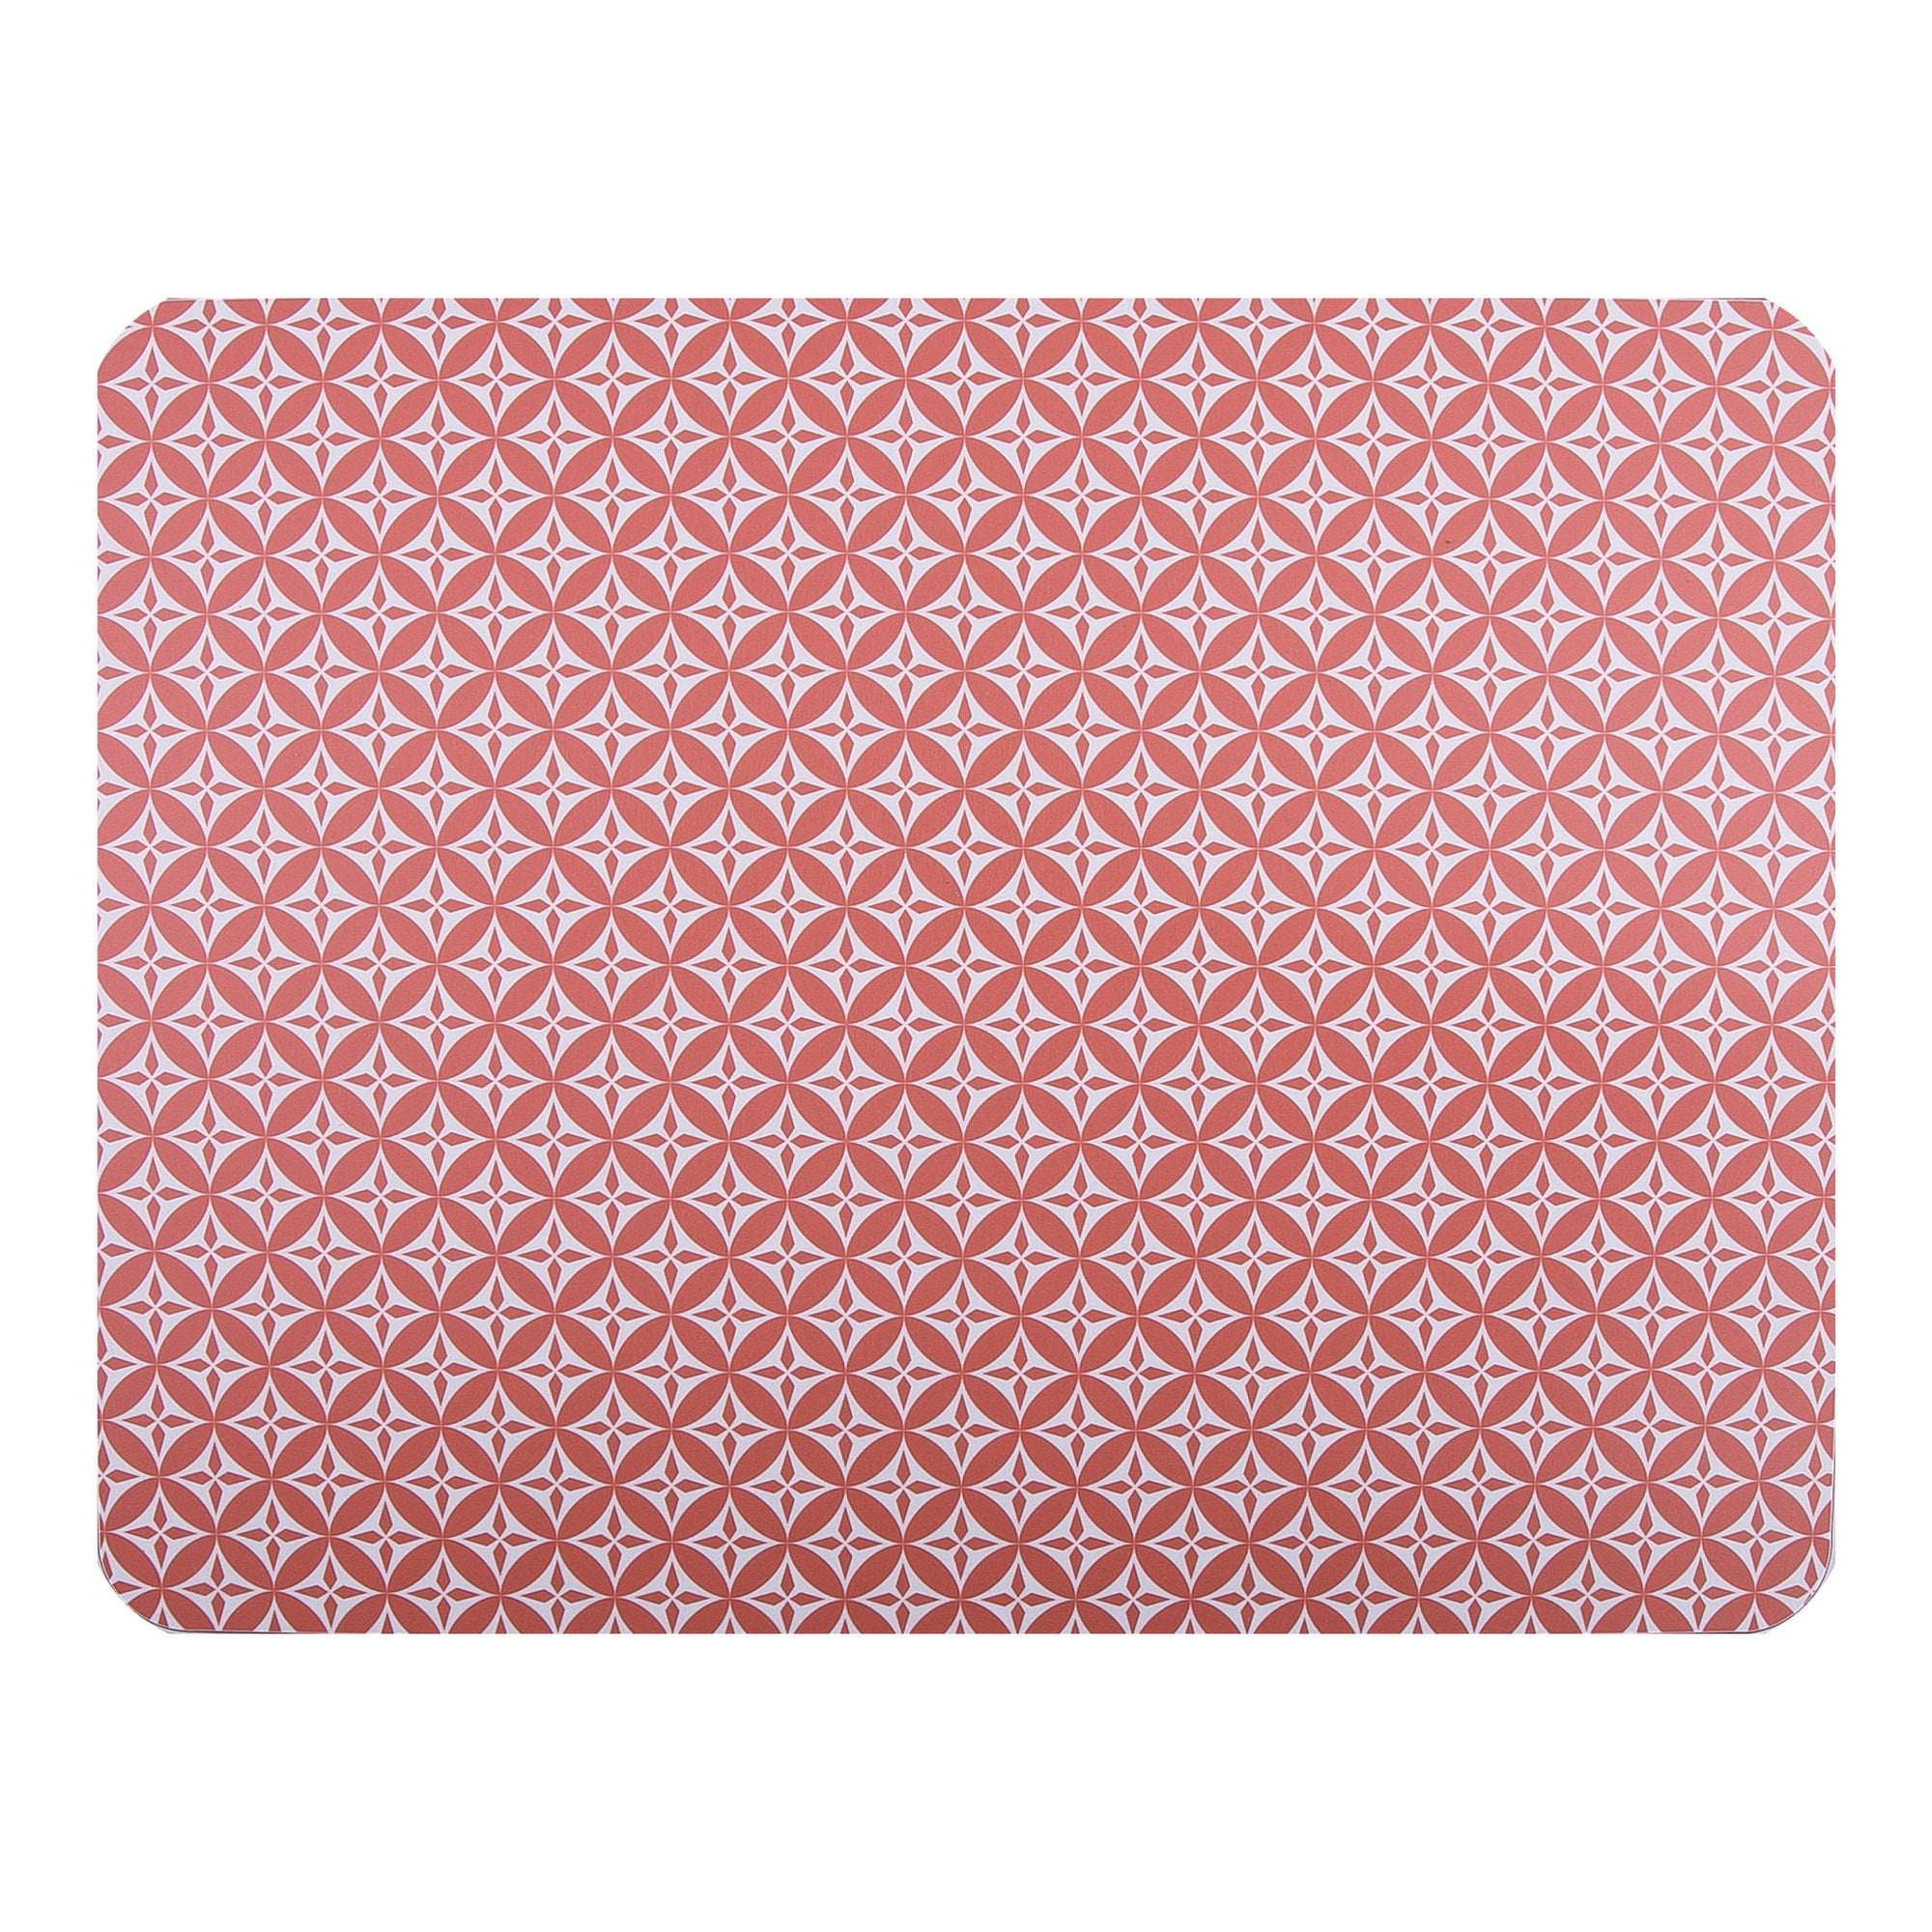 Star Extra Large Table Mat - MAiK sustainably sourced, ethically produced.